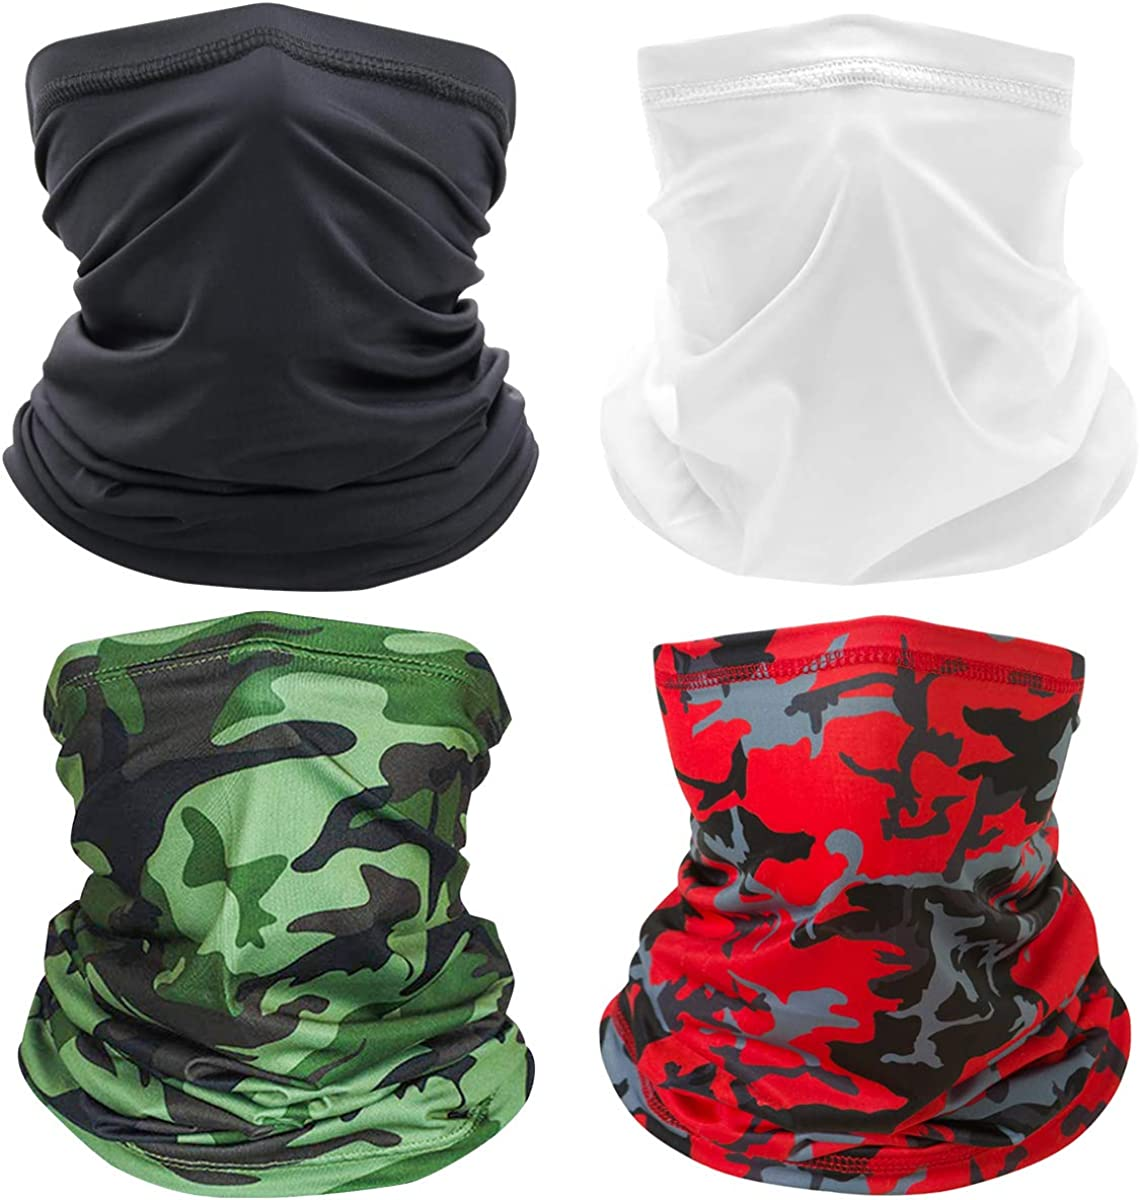 4 Pieces Face Mask Bandanas, UV Protection Bandana Neck Gaiter Headwear Bandana,Neck Gaiter Multi Scarf for Dust, Outdoors,Festivals,Sports Black